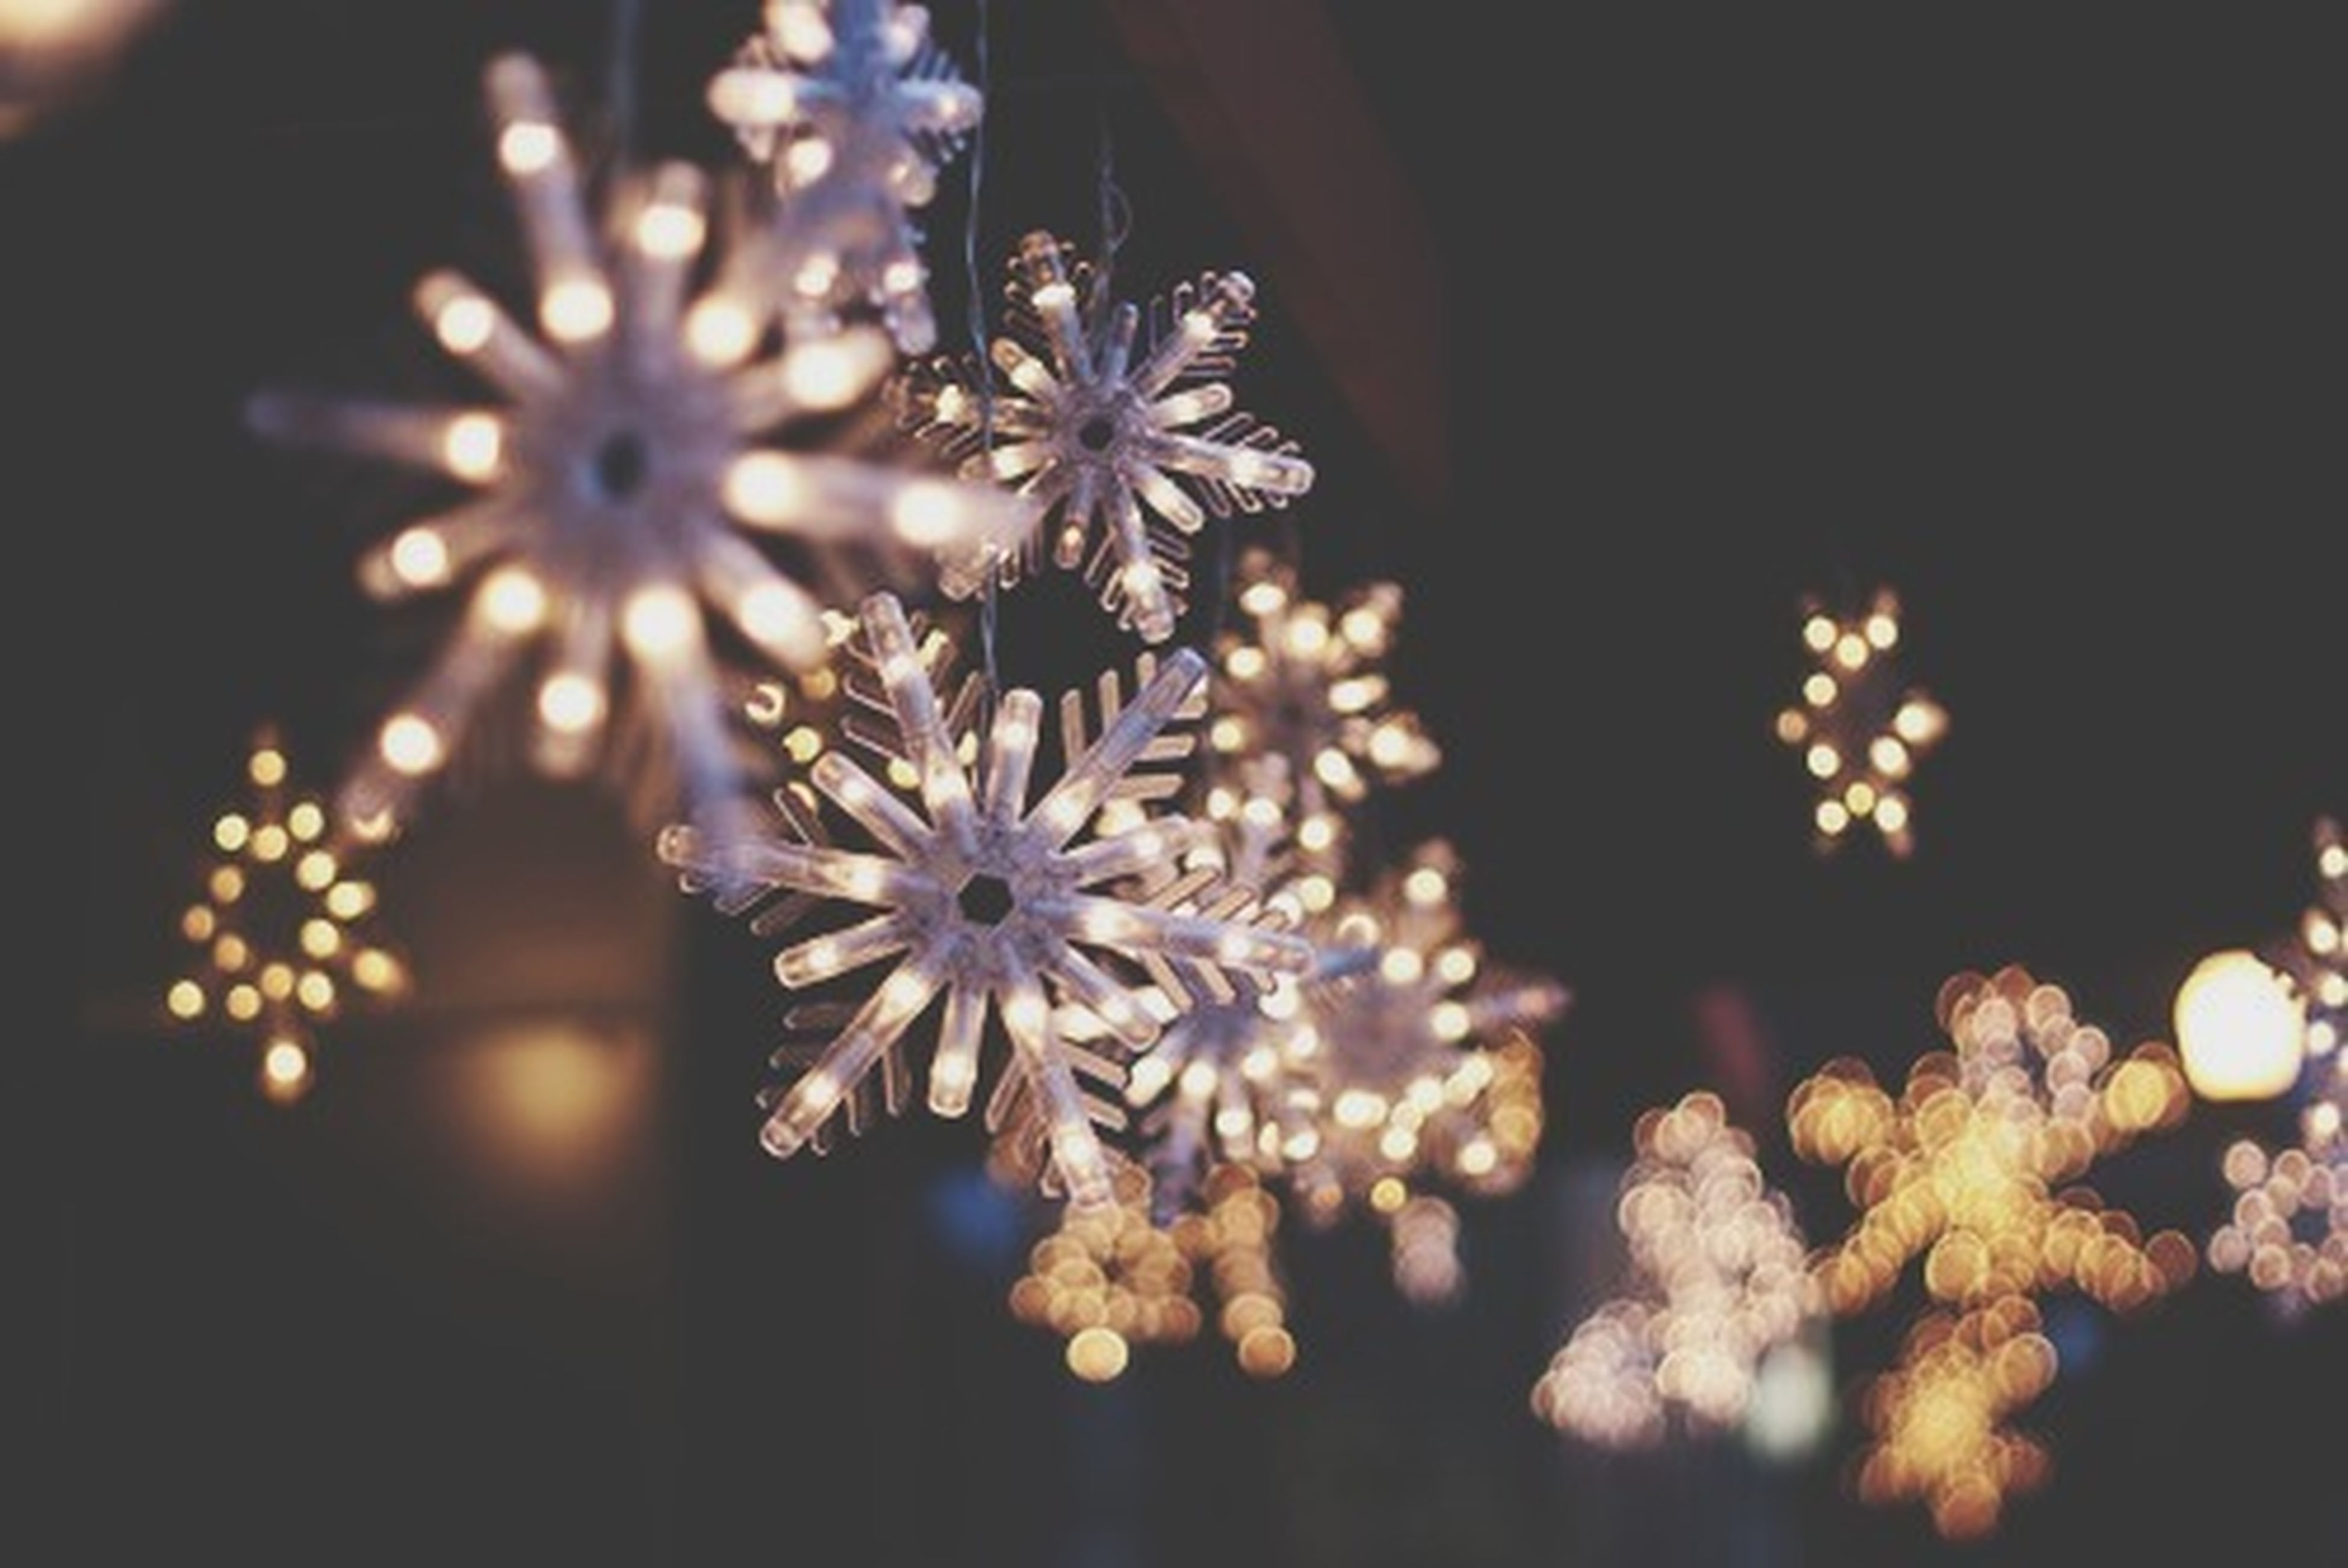 illuminated, decoration, night, indoors, close-up, focus on foreground, lighting equipment, flower, tradition, no people, celebration, religion, hanging, lit, selective focus, decor, glowing, art and craft, reflection, light